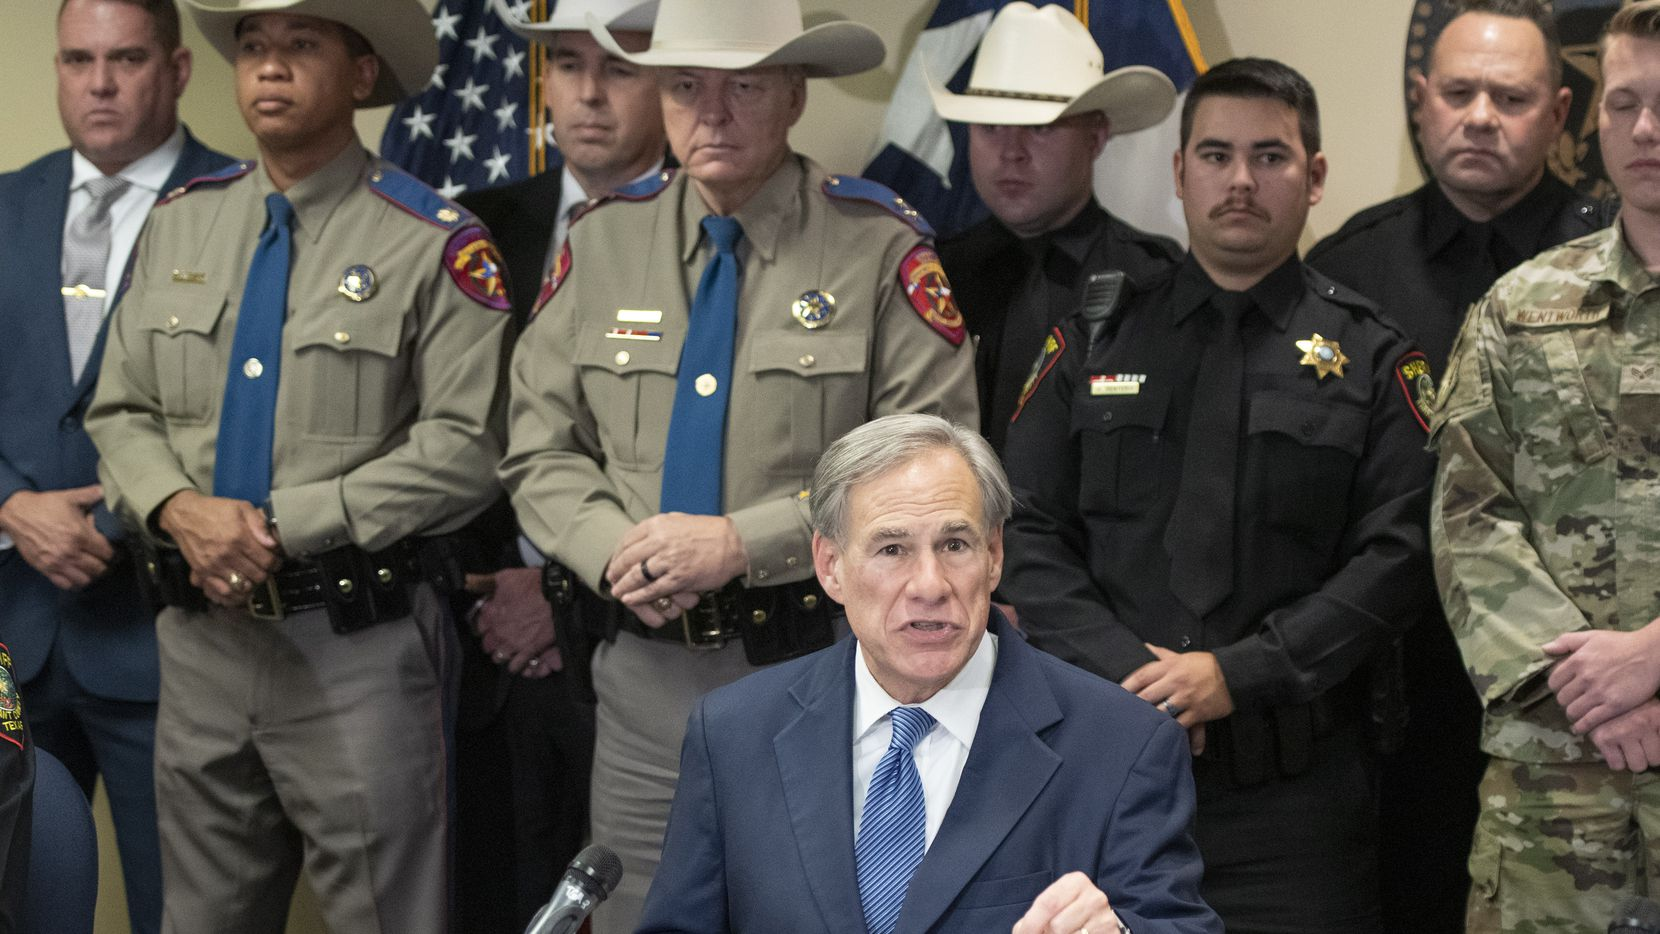 Texas Governor Greg Abbott addresses the media during a May 27, 2021 press conference at the Tarrant County Sheriff's office in Fort Worth, Texas to provide an update on the state's effort to secure the border and prevent the smuggling of dangerous drugs into Texas. (Robert W. Hart/Special Contributor)